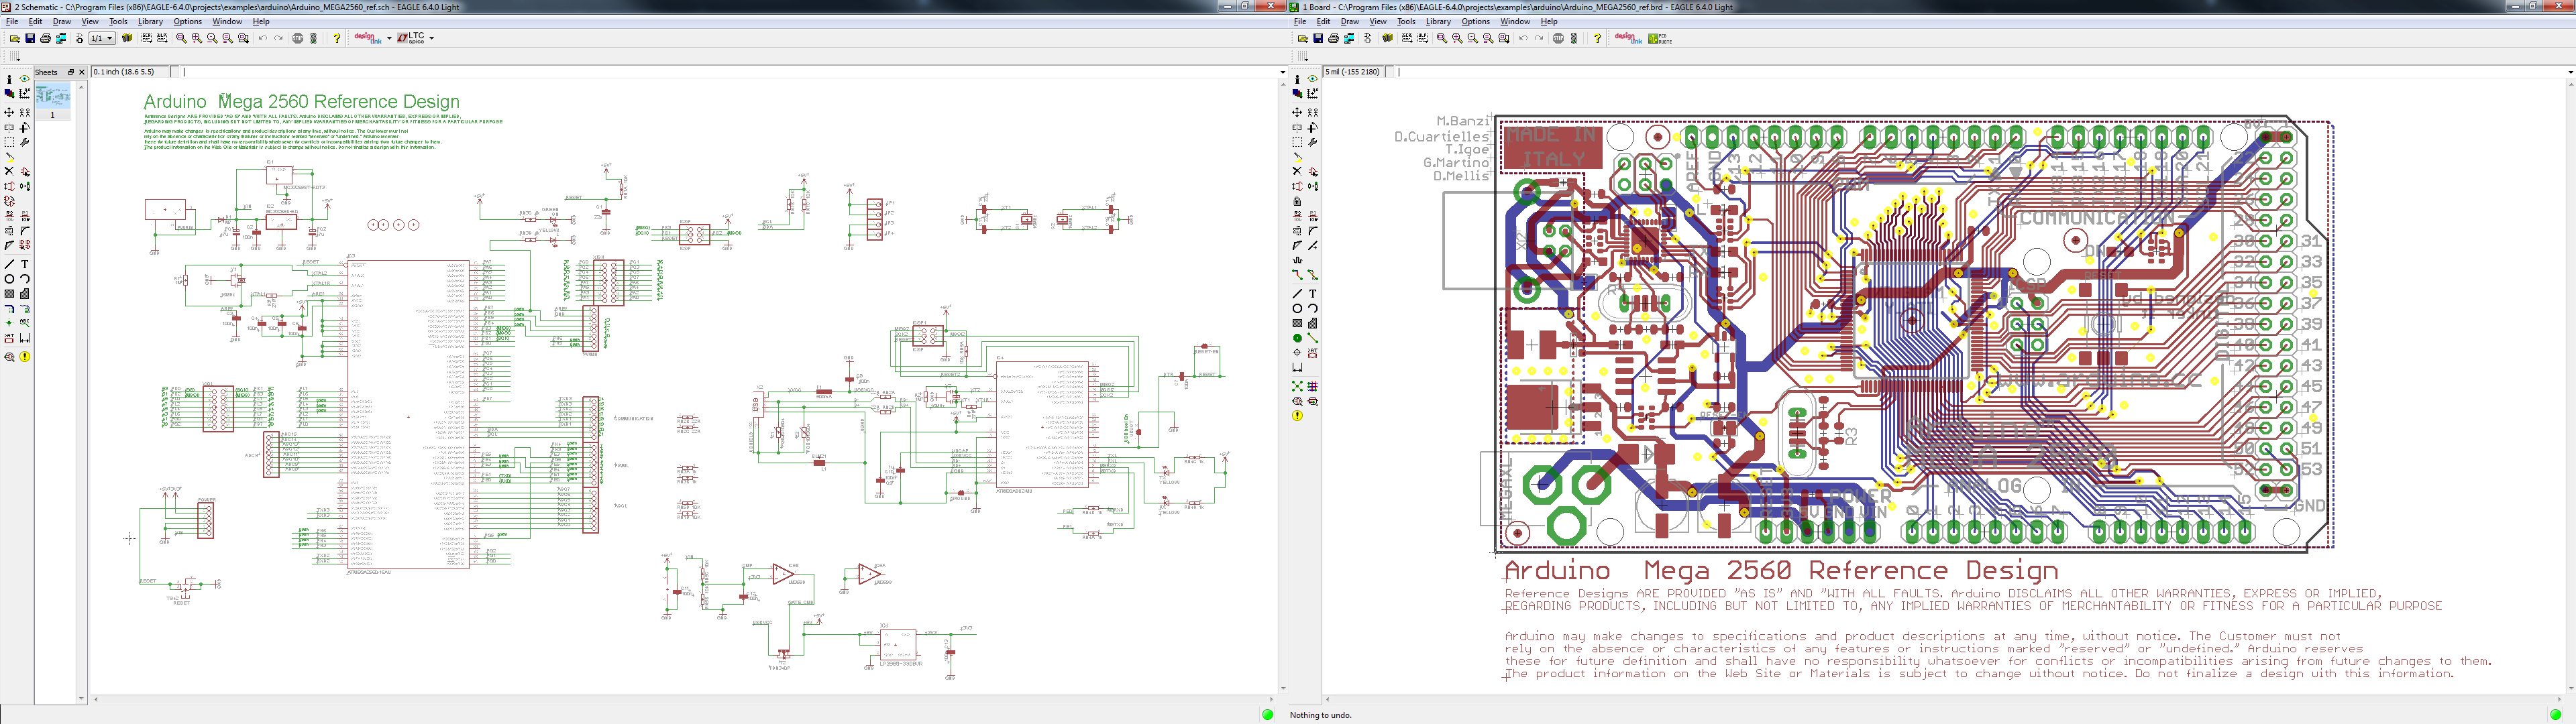 How To Install And Setup Eagle Sale Printed Circuit Board Designer Functional Pcb Design Schematic View Both Open